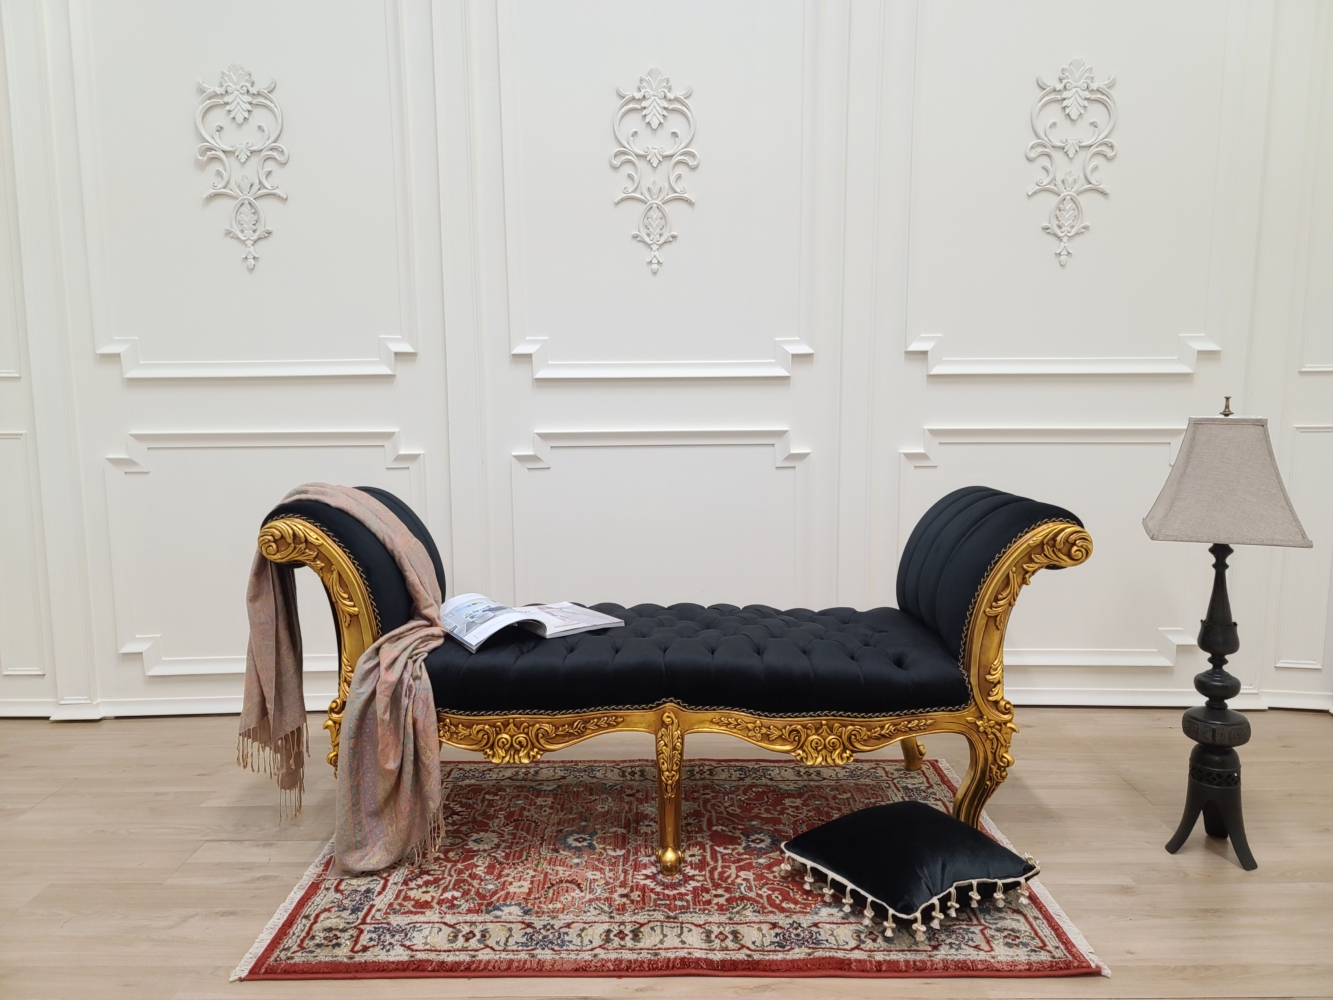 Made To Order / French Style Chaise Lounge/ Antique Gold Leaf Finish/Hand Carved Wood Frame/ Tufted Black Velvet